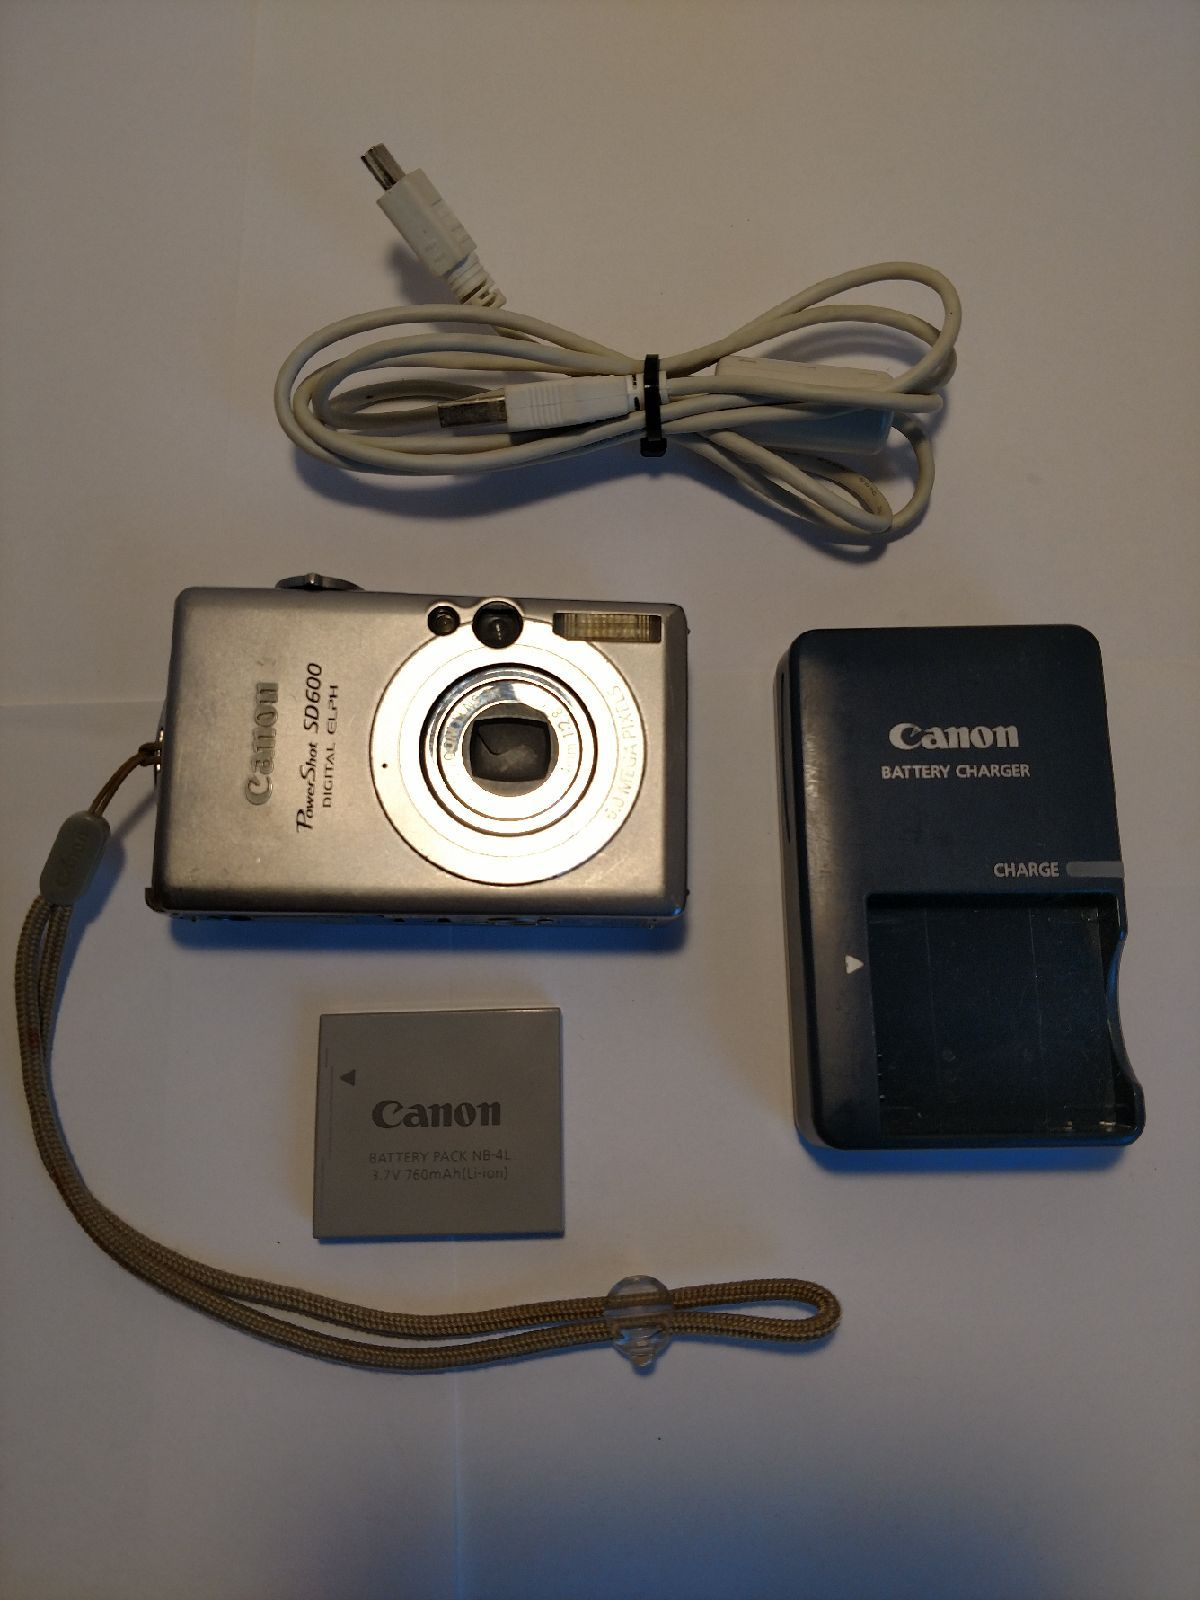 Canon Powershot Sd600 Digital Elph 6 Megapixel Compact Camera Includes Battery Charger And Case Logic Case Canon Battery Compact Camera Battery Charger